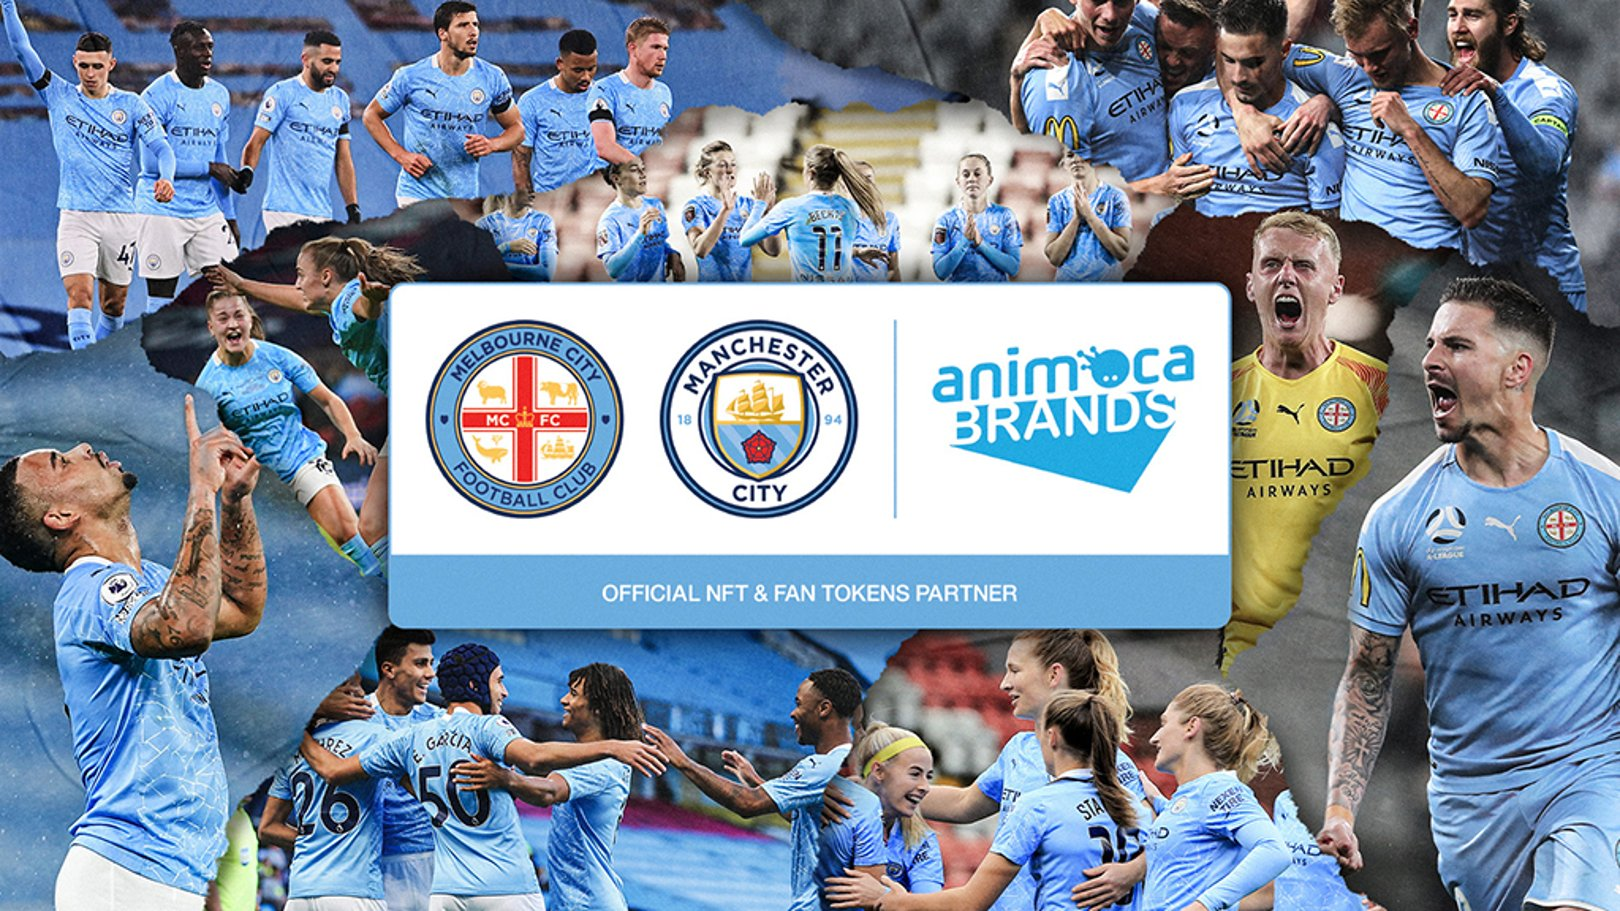 Animoca Brands team up with City and Melbourne City